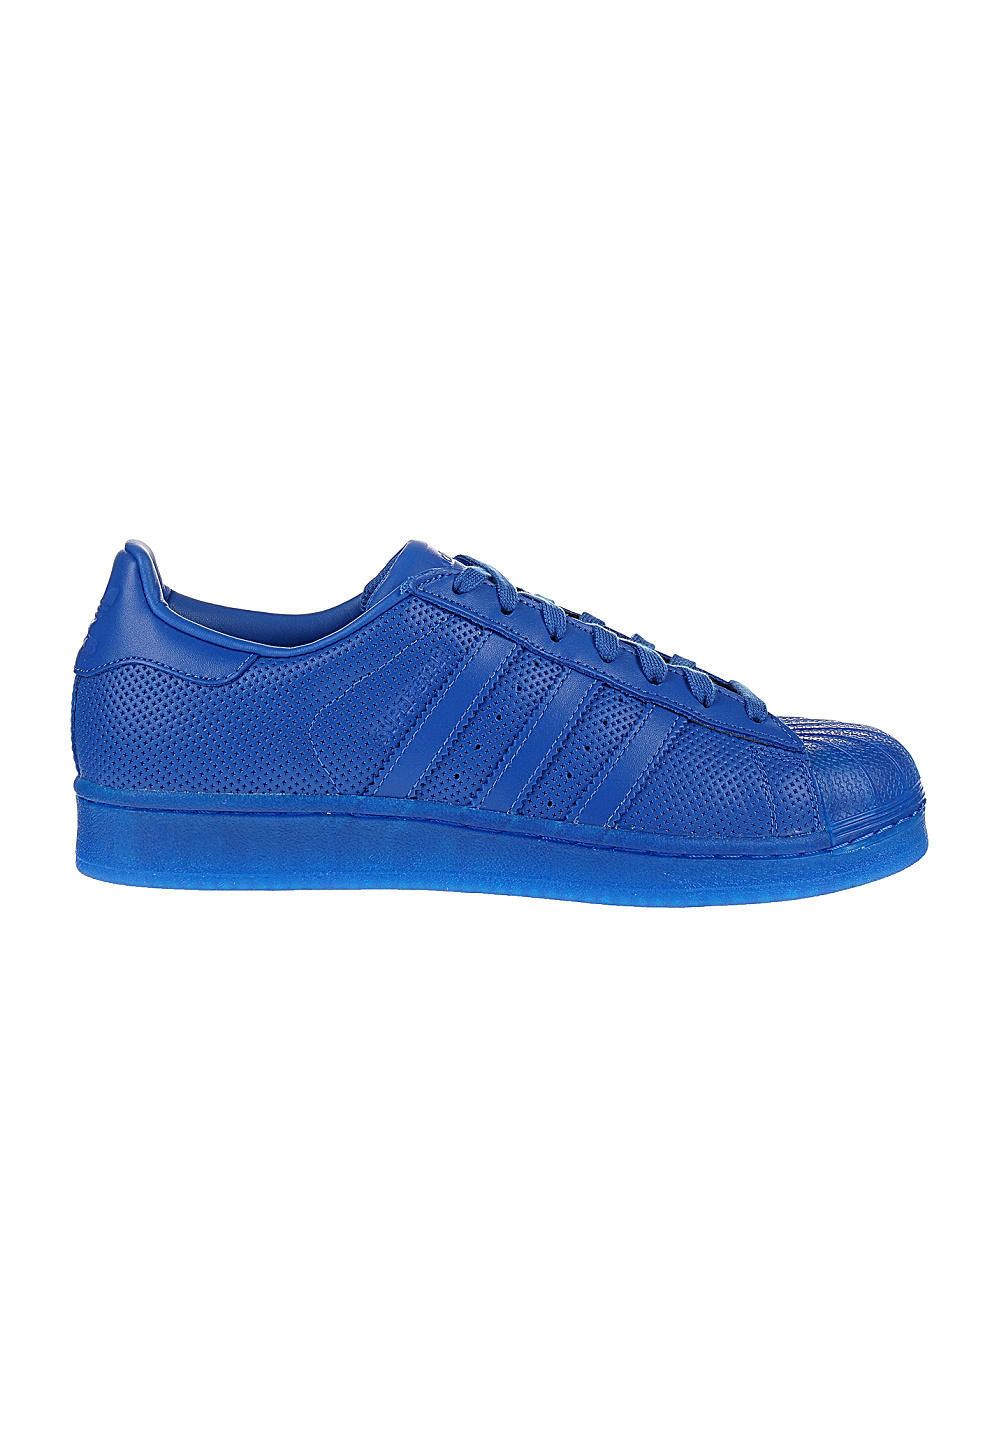 7d89b4cda0a7 Next. -50%. This product is currently out of stock. ADIDAS. Superstar  Adicolor - Sneakers for Women